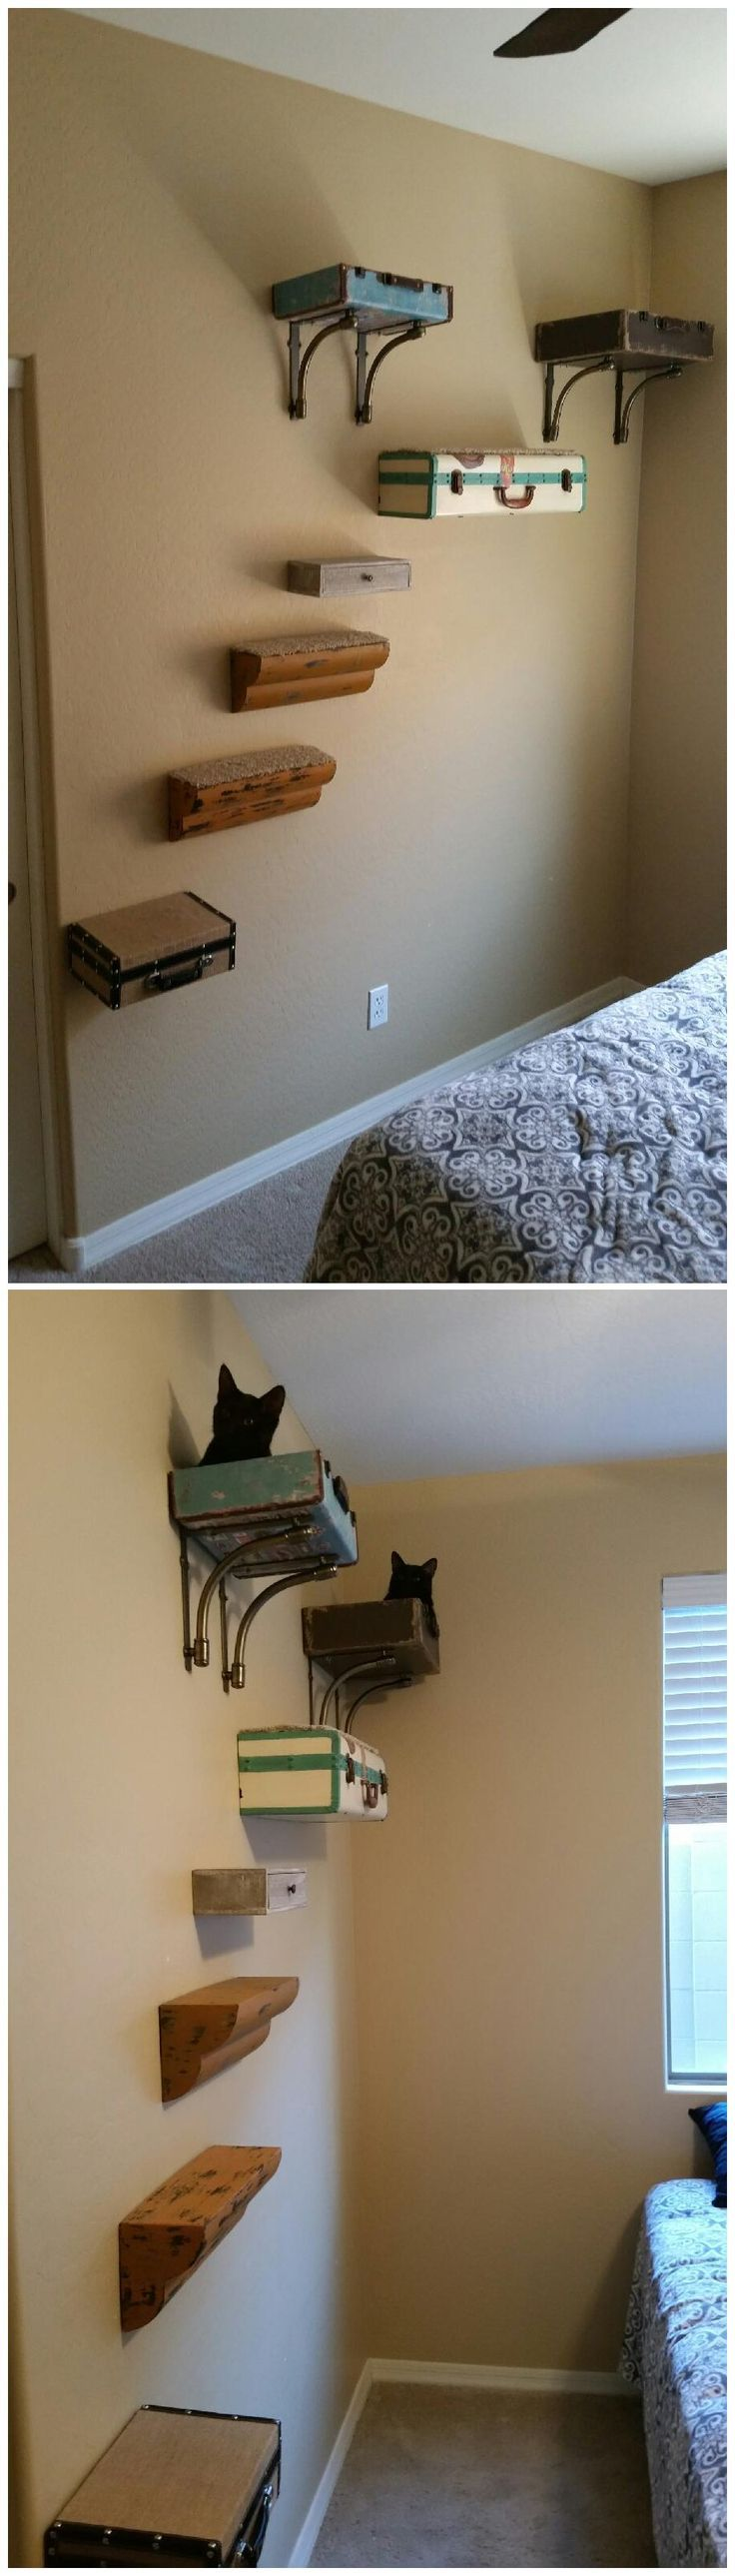 207 best wall shelves for cats to climb images on pinterest for catification wall suitcase beds shelves stairs cat tree tap the link now to see all amipublicfo Image collections